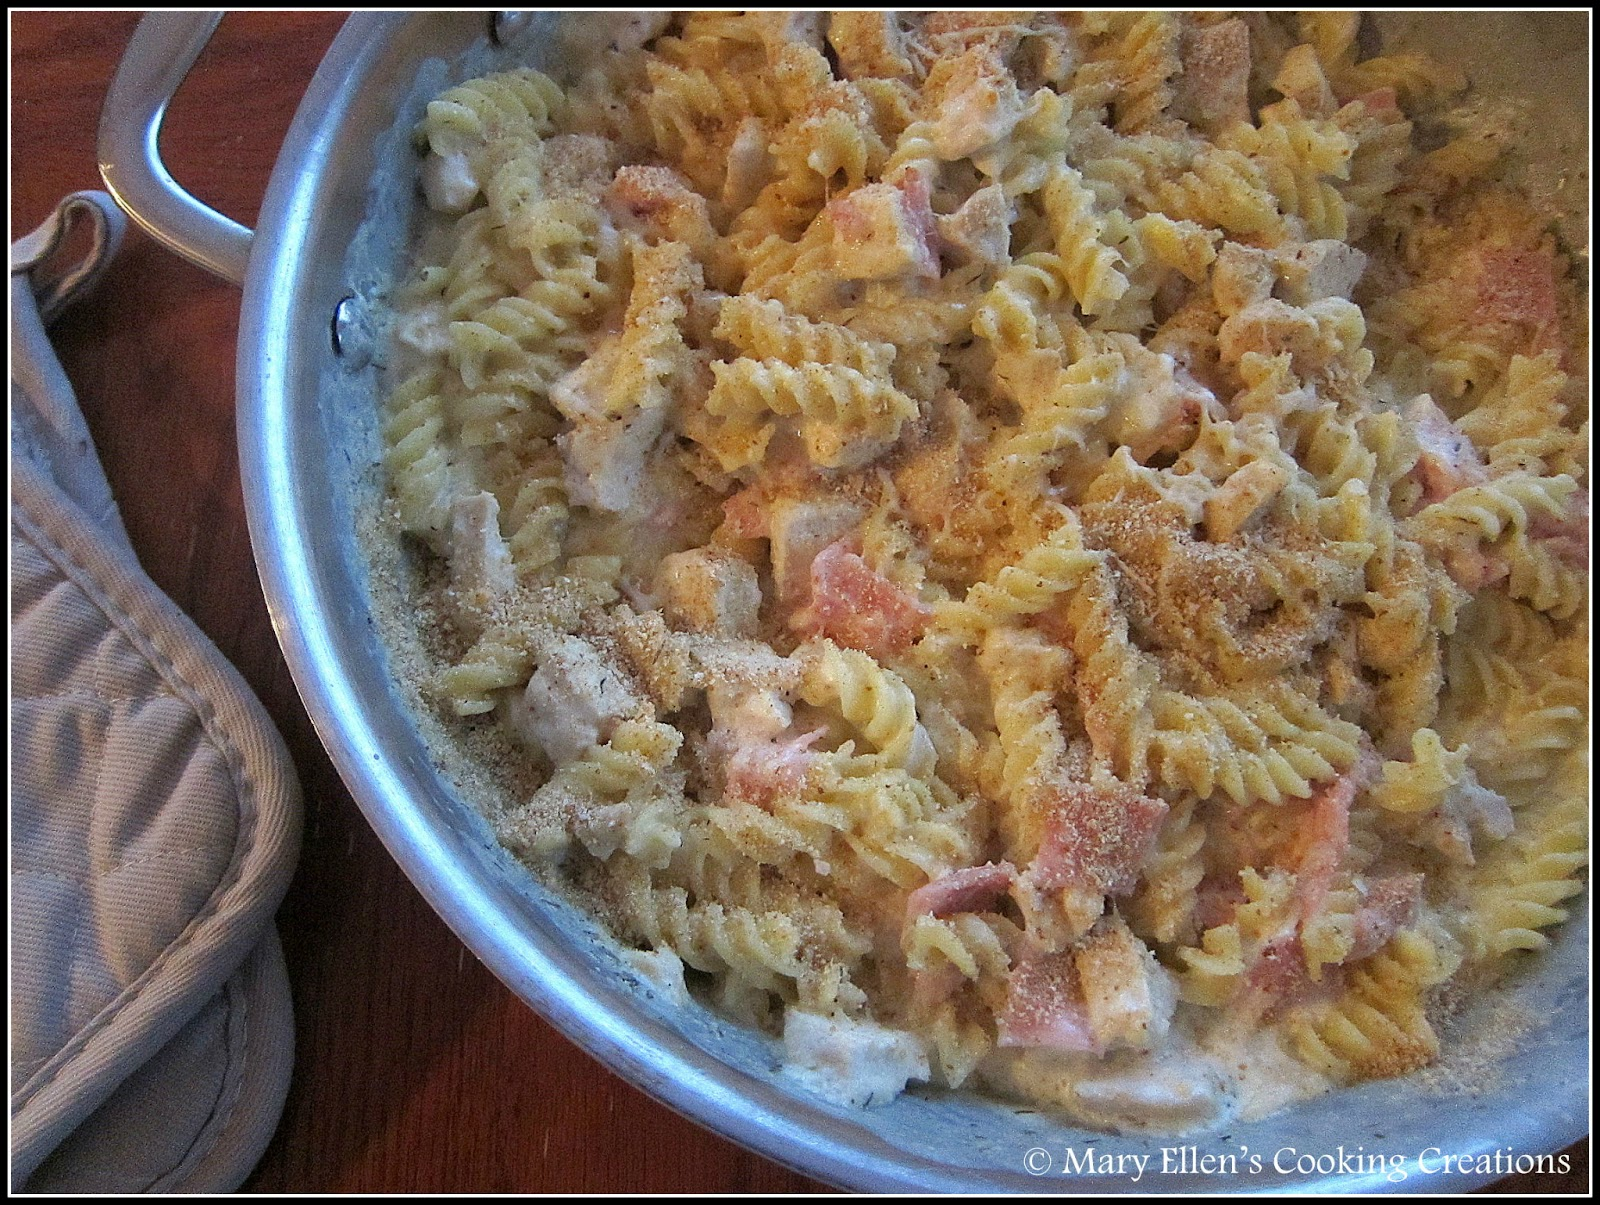 Mary Ellen's Cooking Creations: Chicken Cordon Bleu Pasta Bake